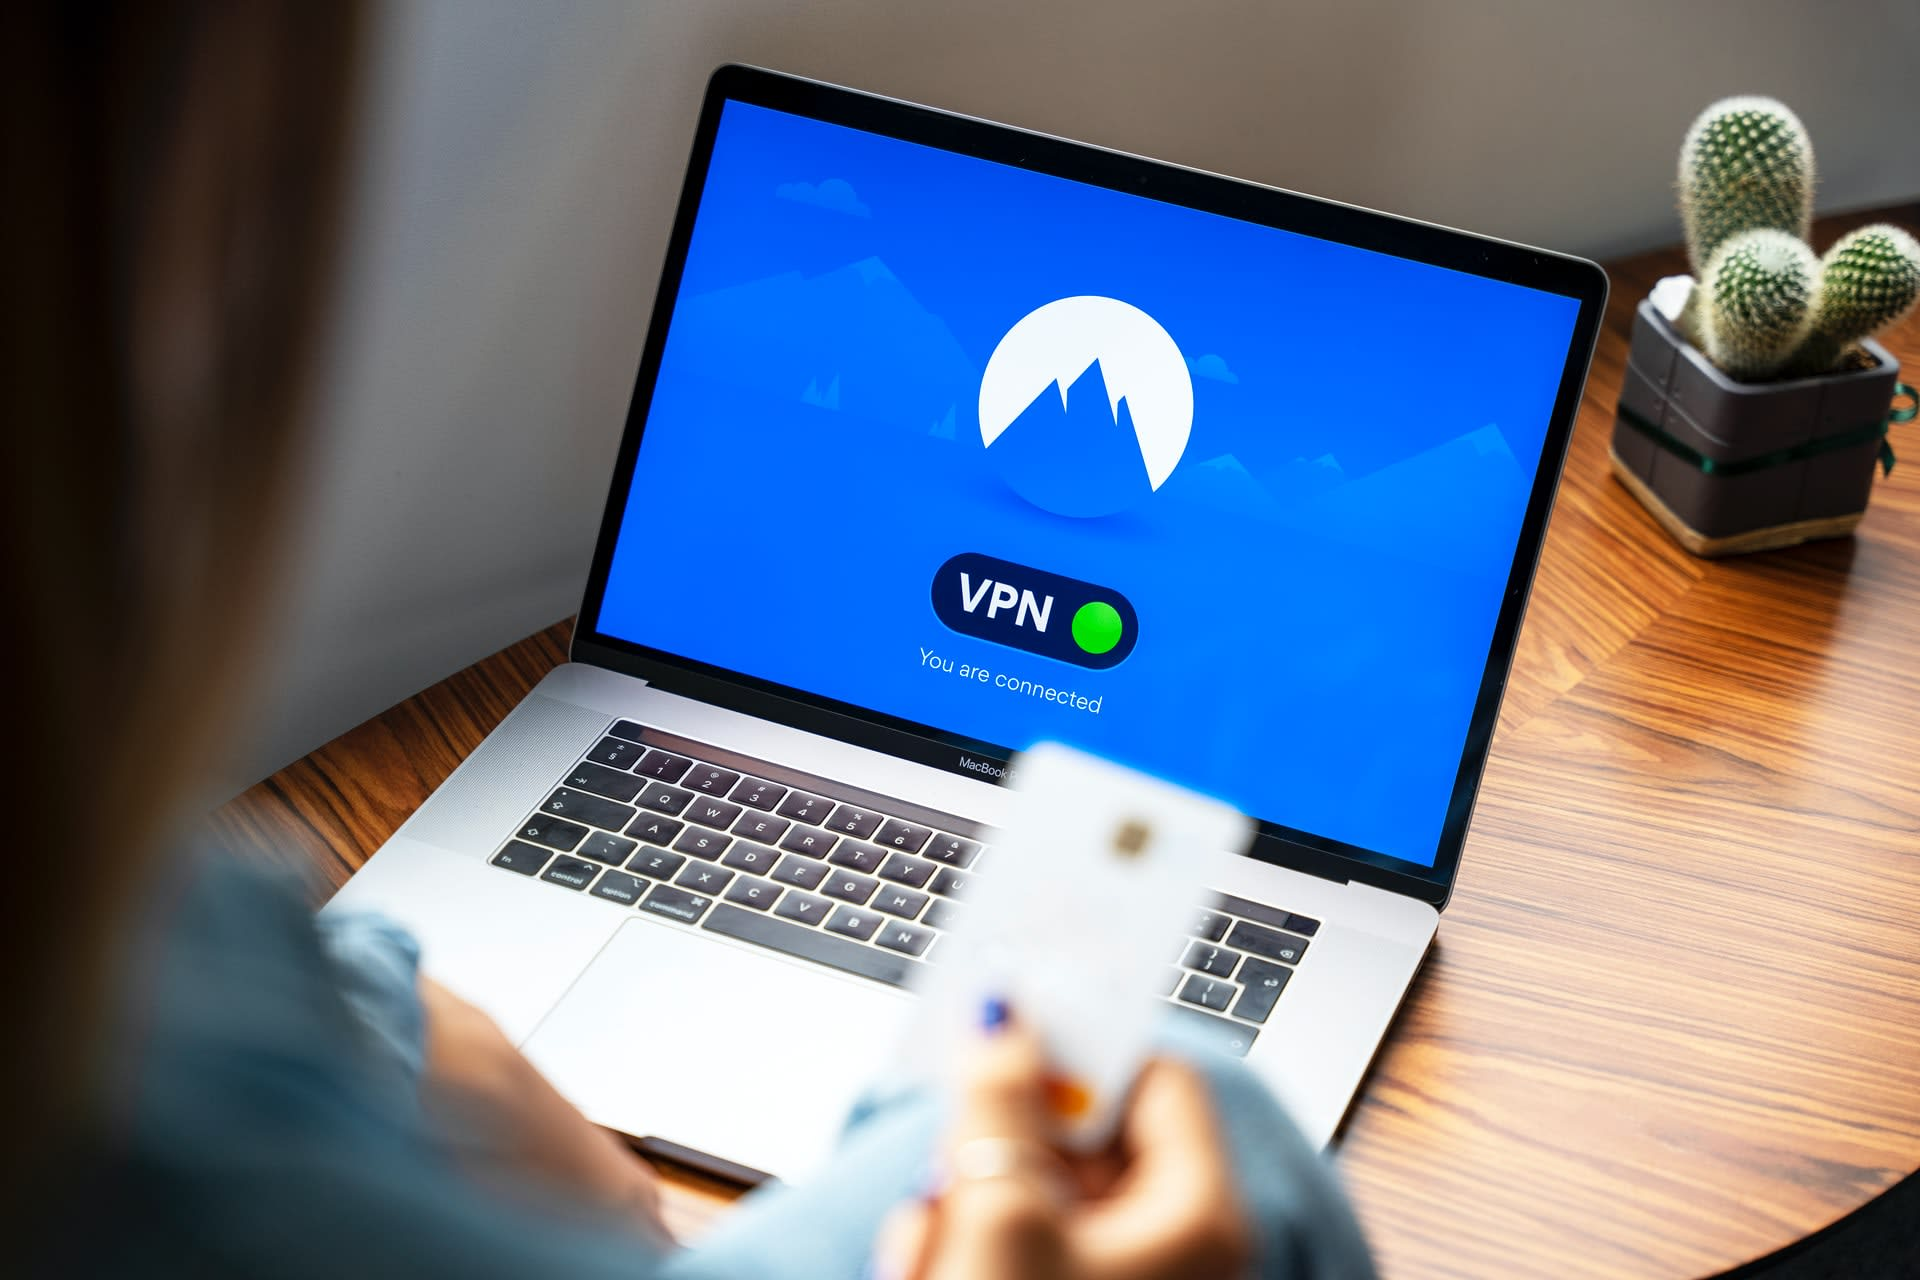 Benefits of Using VPN While Working at Home